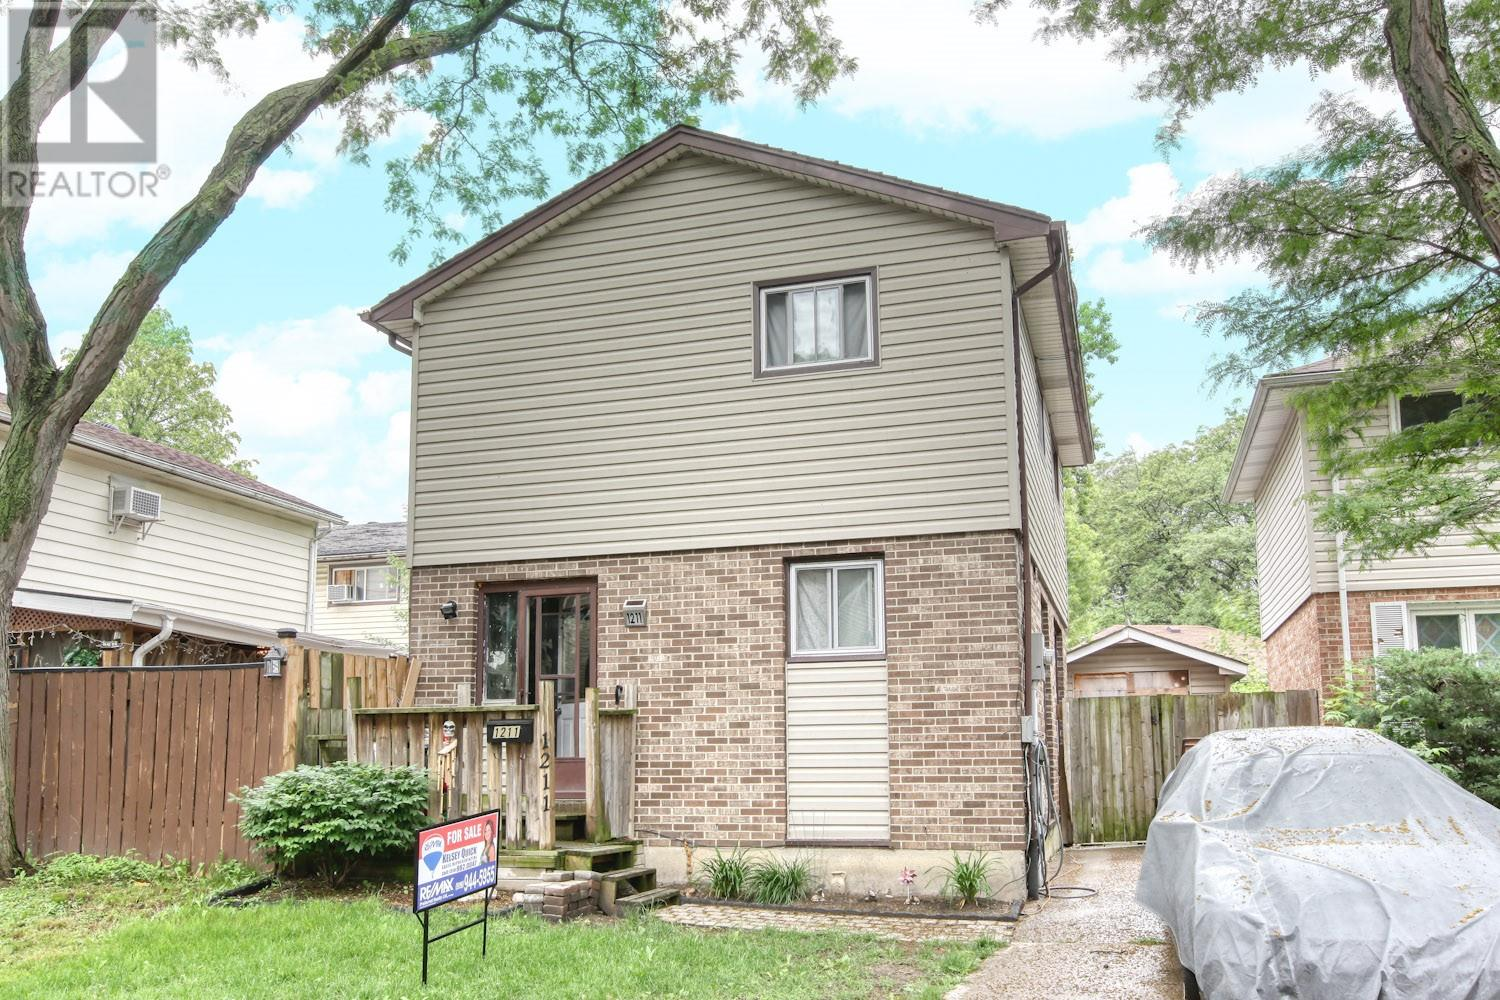 Removed: 1211 Foxhill Court, Windsor, ON - Removed on 2019-06-25 06:06:07